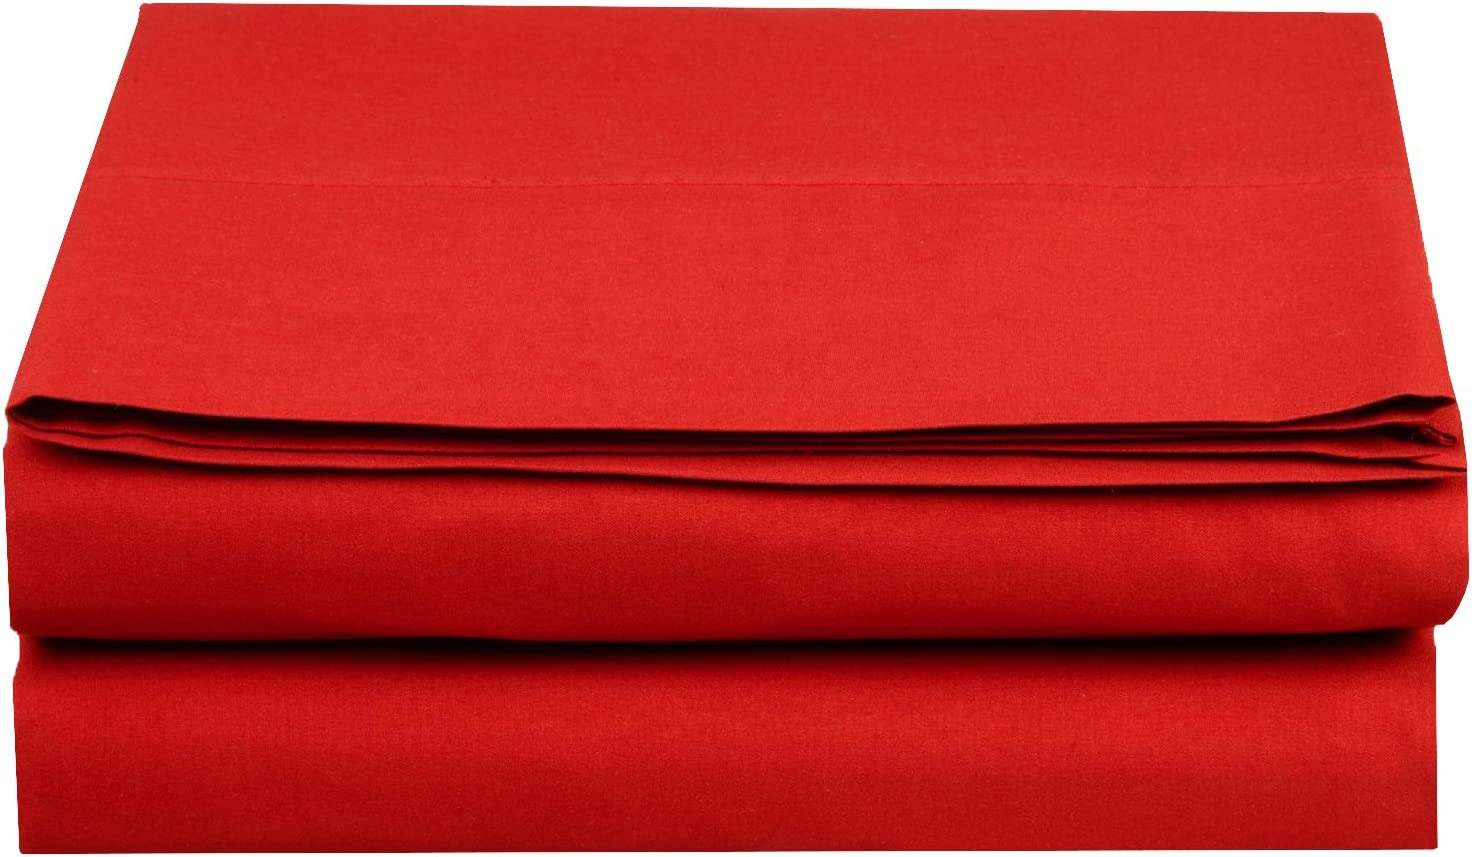 Luxury Fitted Sheet Elegant Comfort Red Sheets